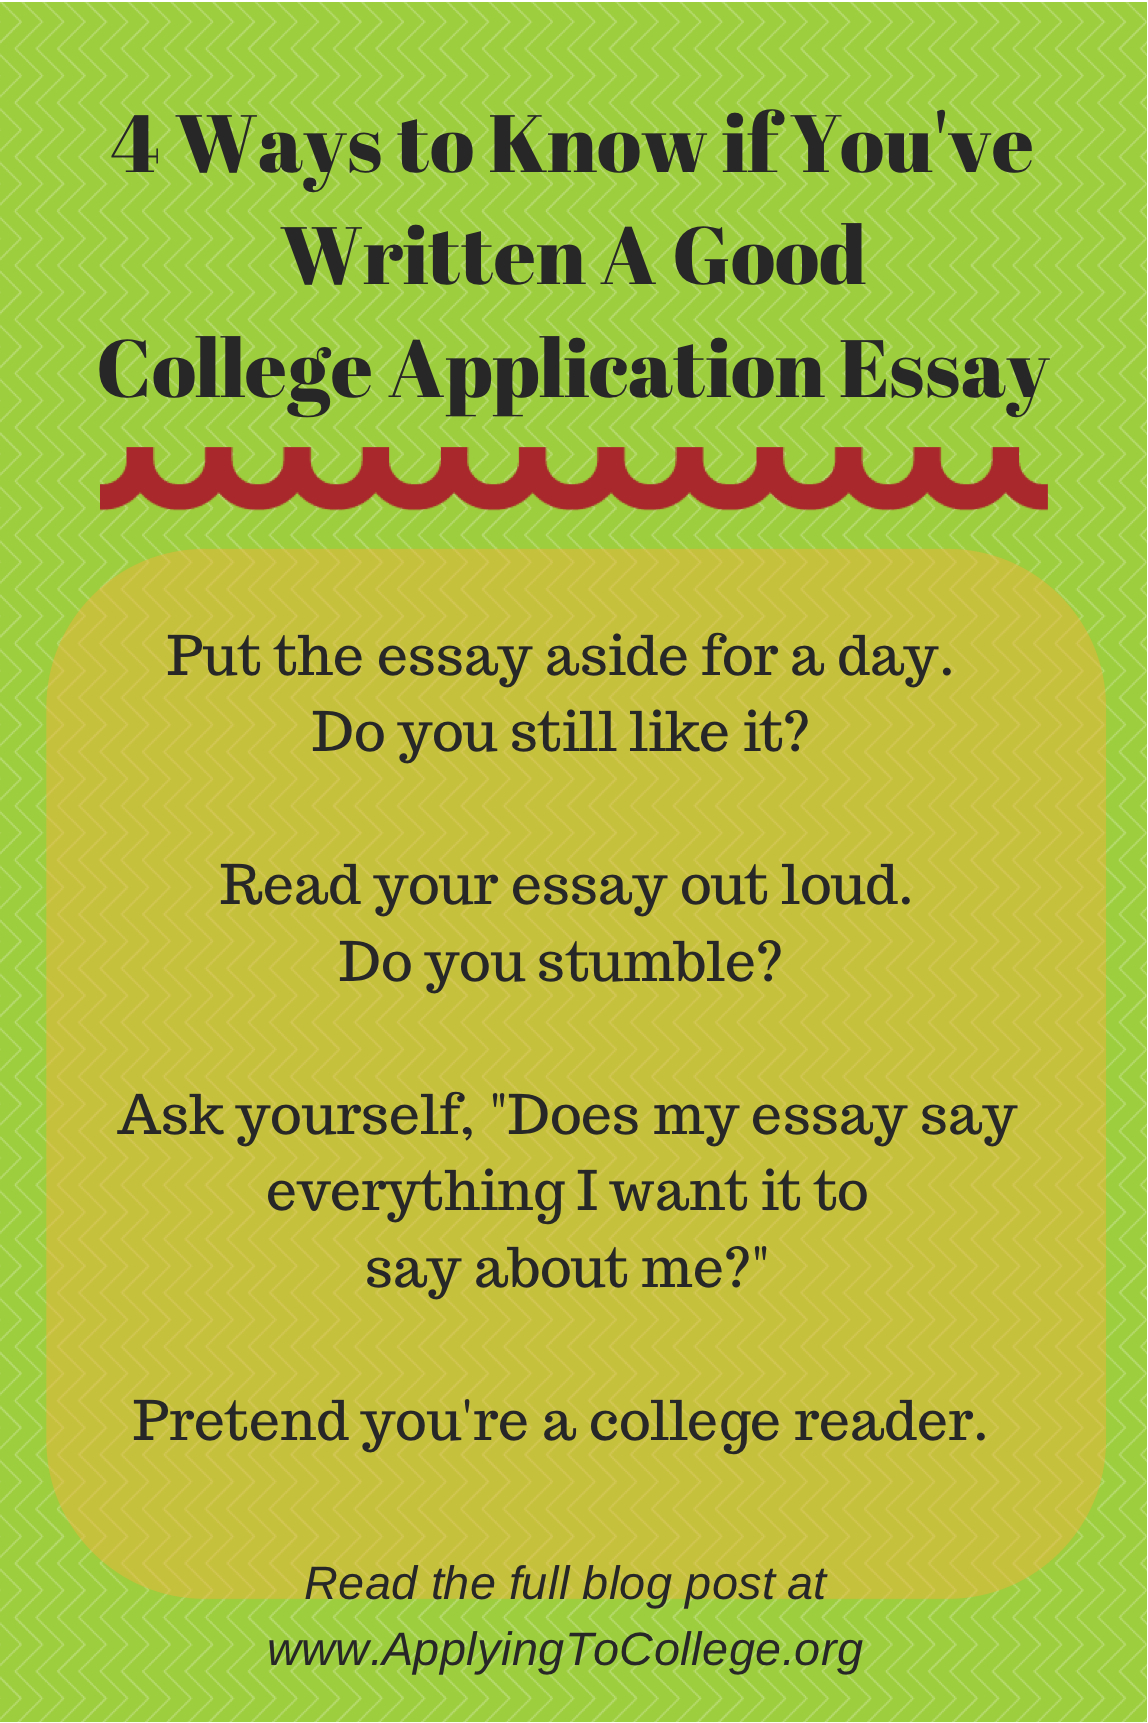 Love Essay Writing Ways To Know If You Ve Written A Good College Essay Applying  Ways To  Know Good Science Essay Topics  Good Topics For Persuasive Essays also Capital Punishment Argument Essay Is My Essay Good Ways To Know If You Ve Written A Good College Essay  Apa Style Essay Format